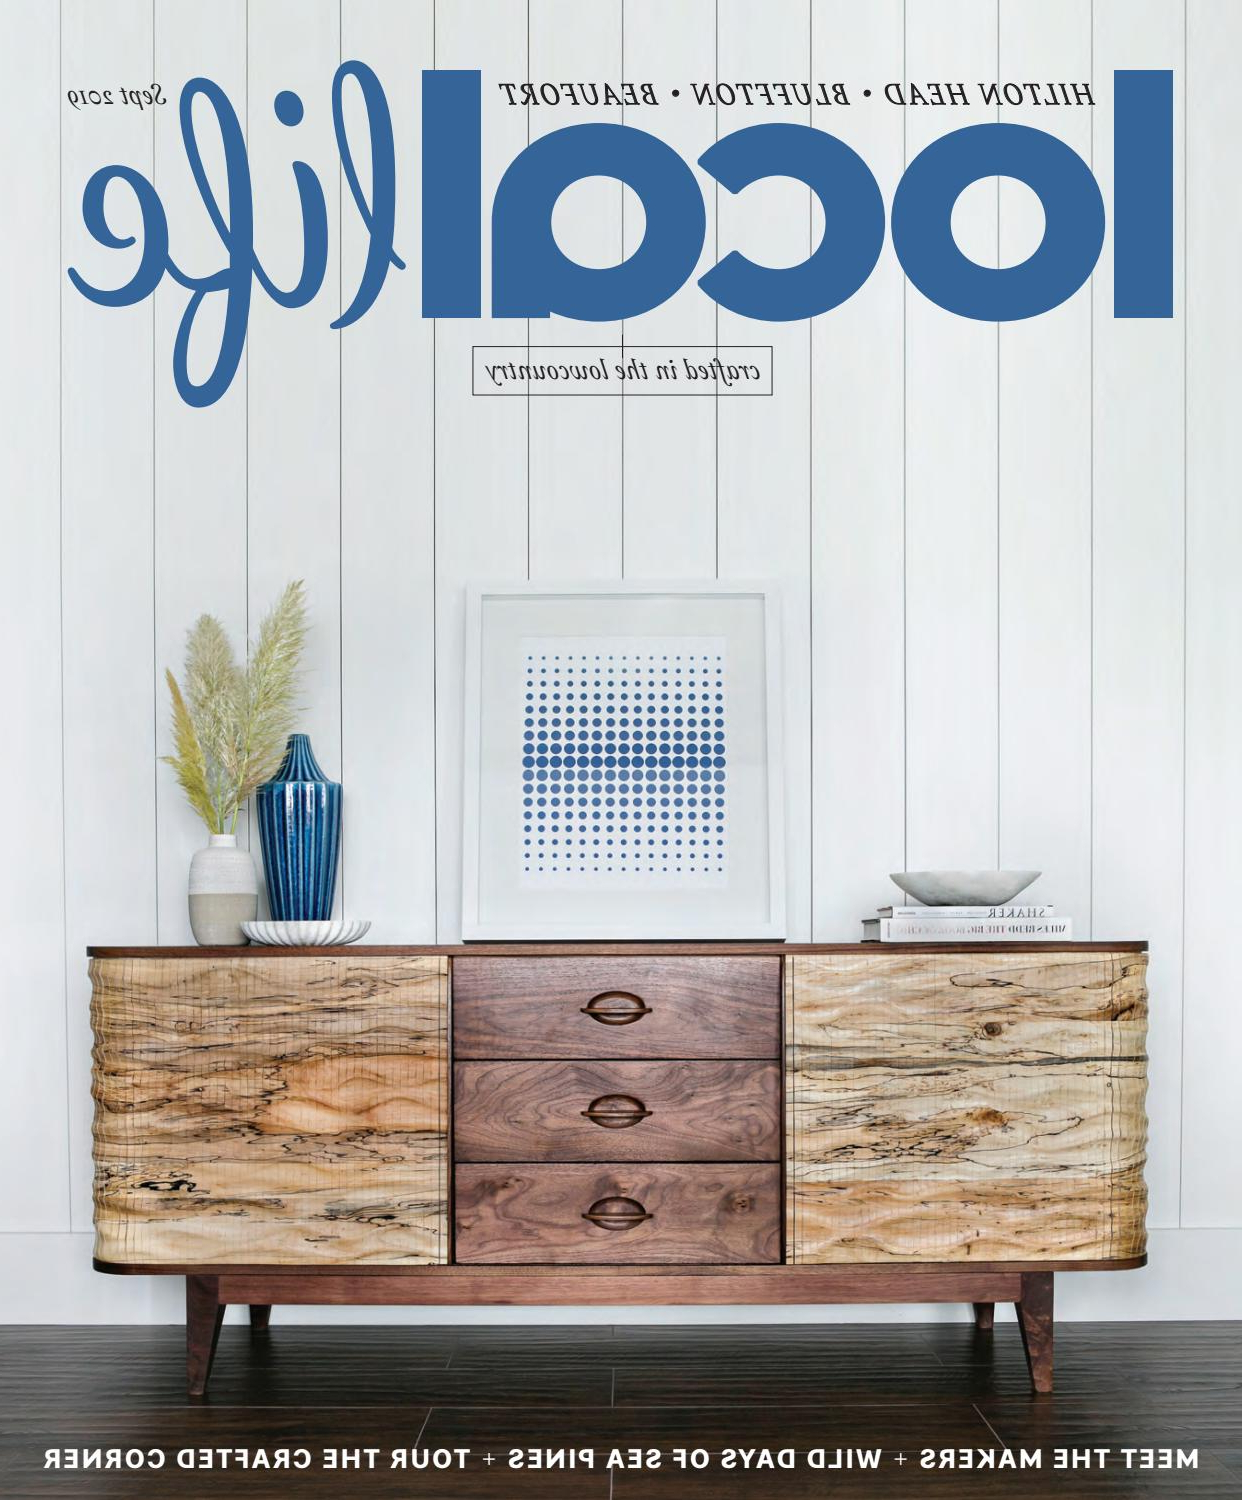 Local Life Magazine September 2019Locallife – Issuu With Regard To Strokes And Waves Credenzas (View 14 of 20)